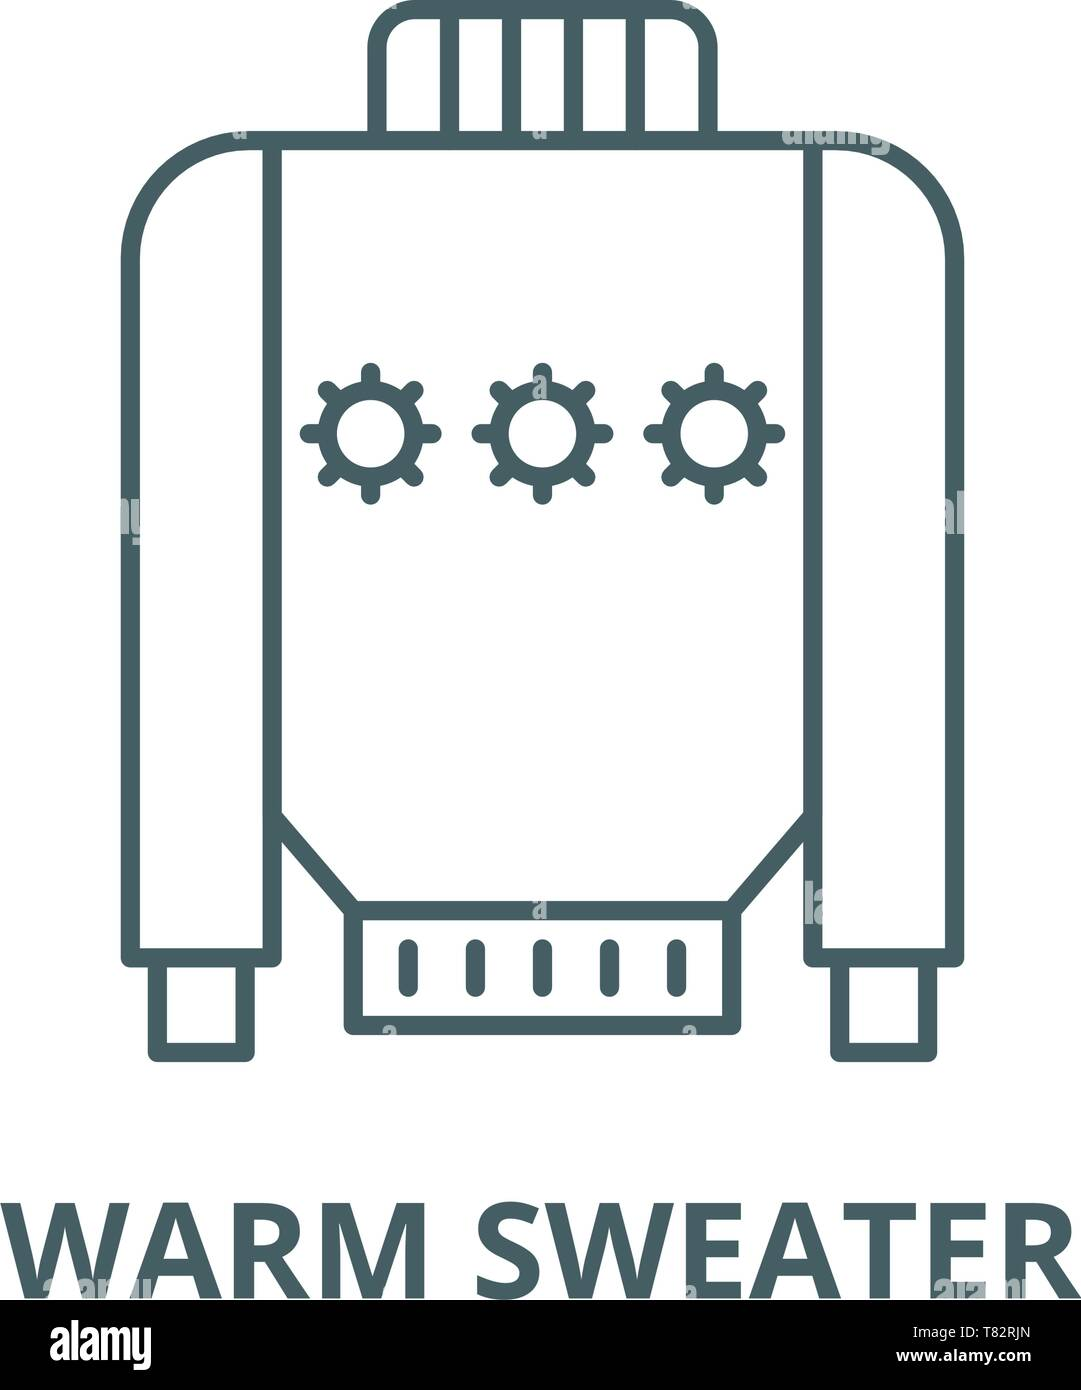 Warm sweater vector line icon, linear concept, outline sign, symbol - Stock Vector